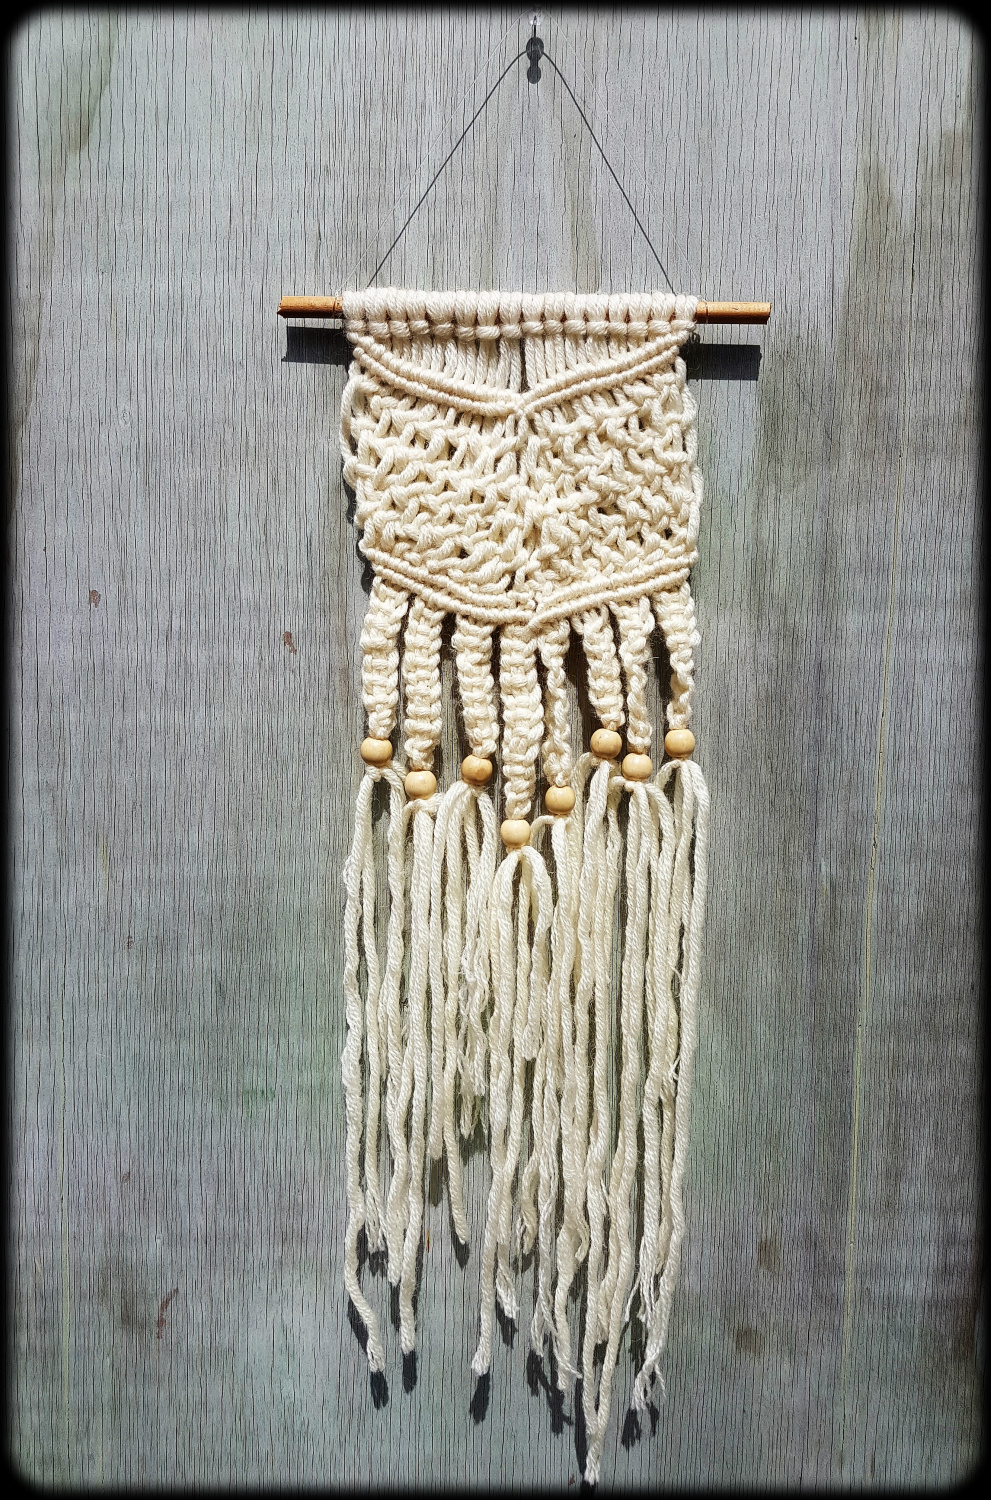 Macrame Knotted Wall Hanging Felt